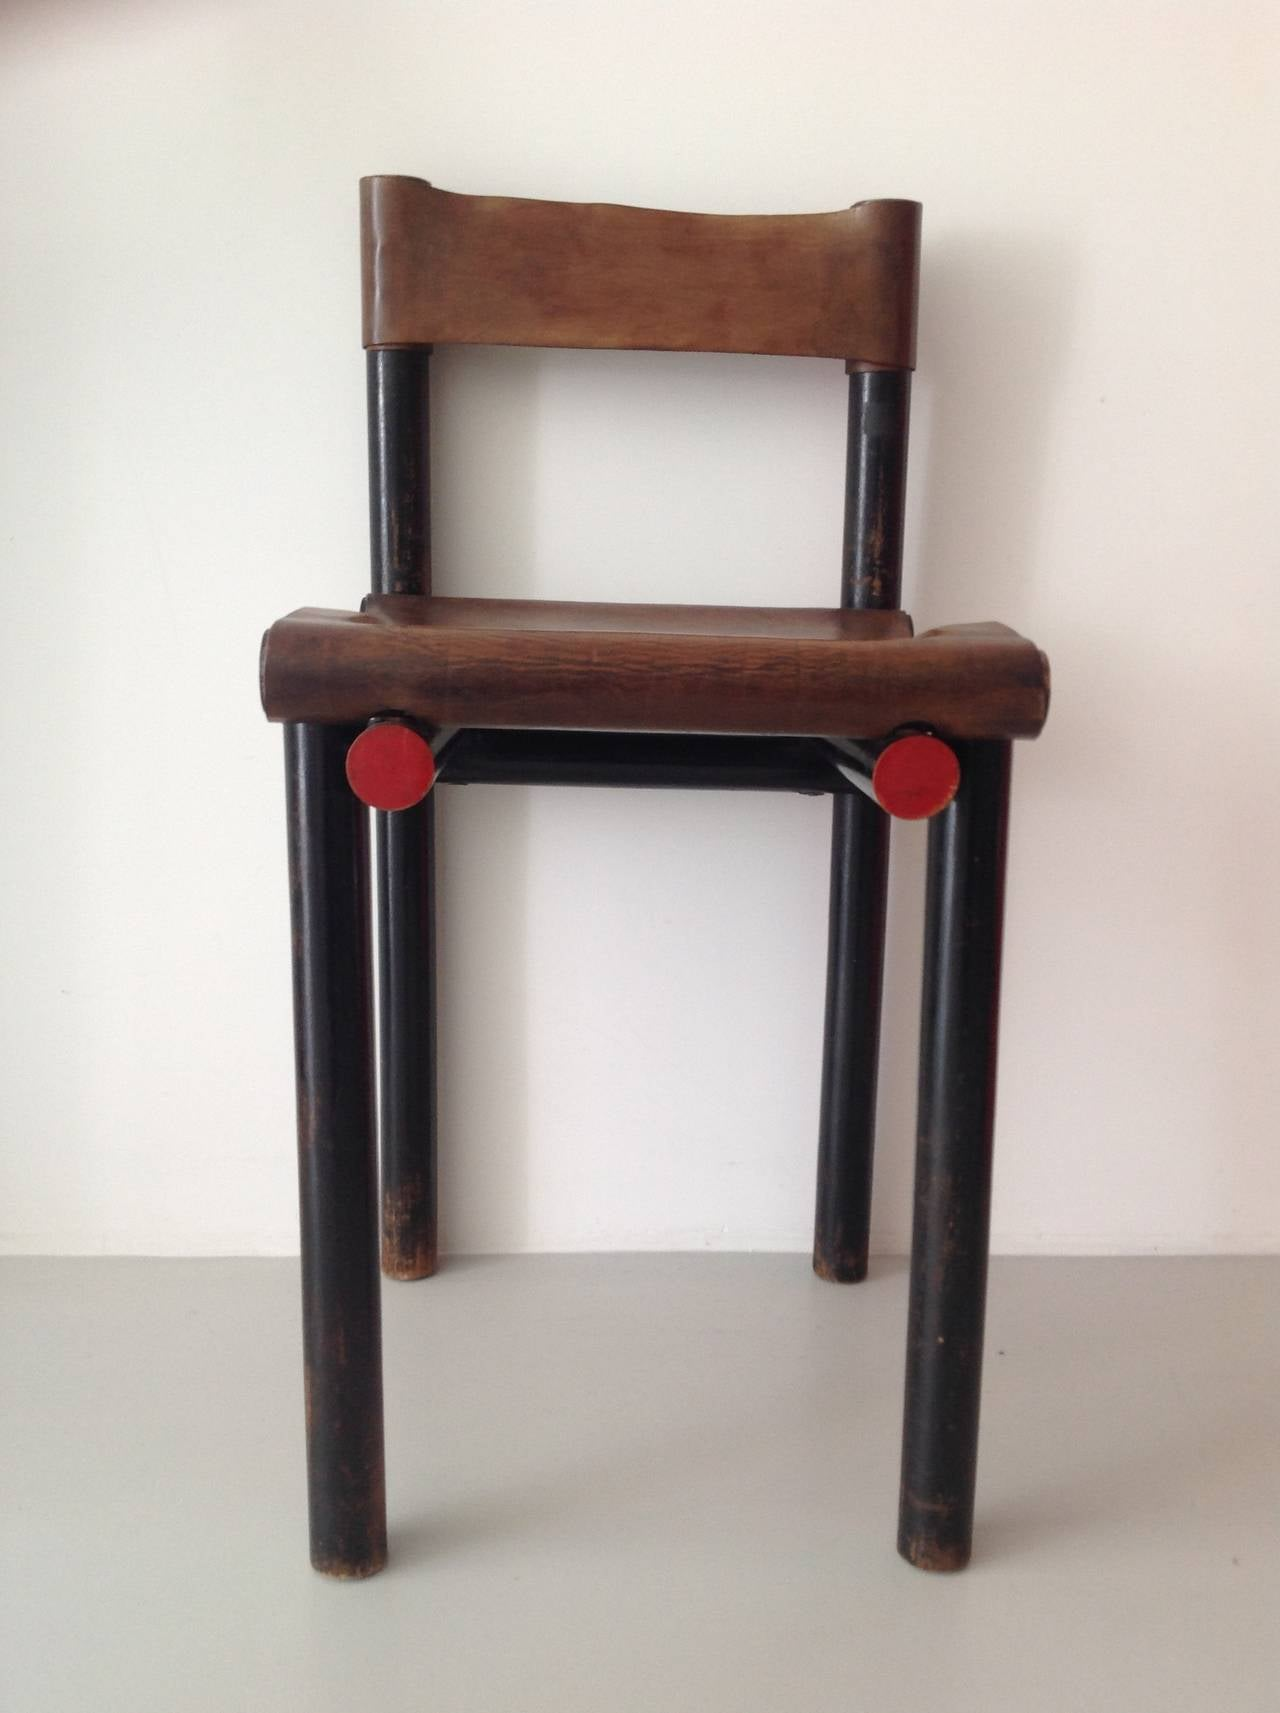 Gerrit rietveld chair for sale - Piano Chair By Gerrit Rietveld De Stijl 2